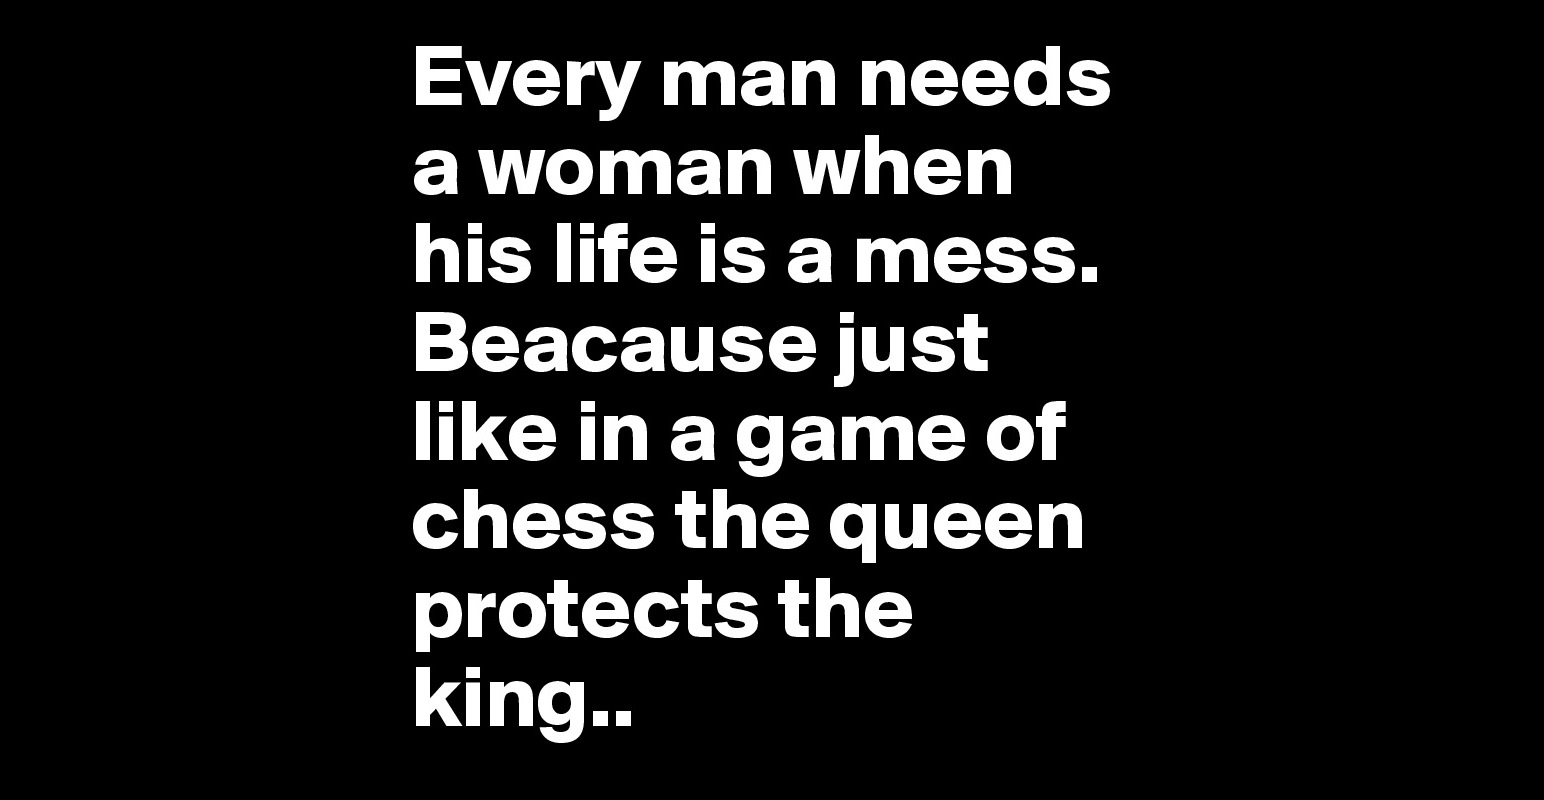 Every Man Needs A Woman When His Life Is A Mess. Beacause